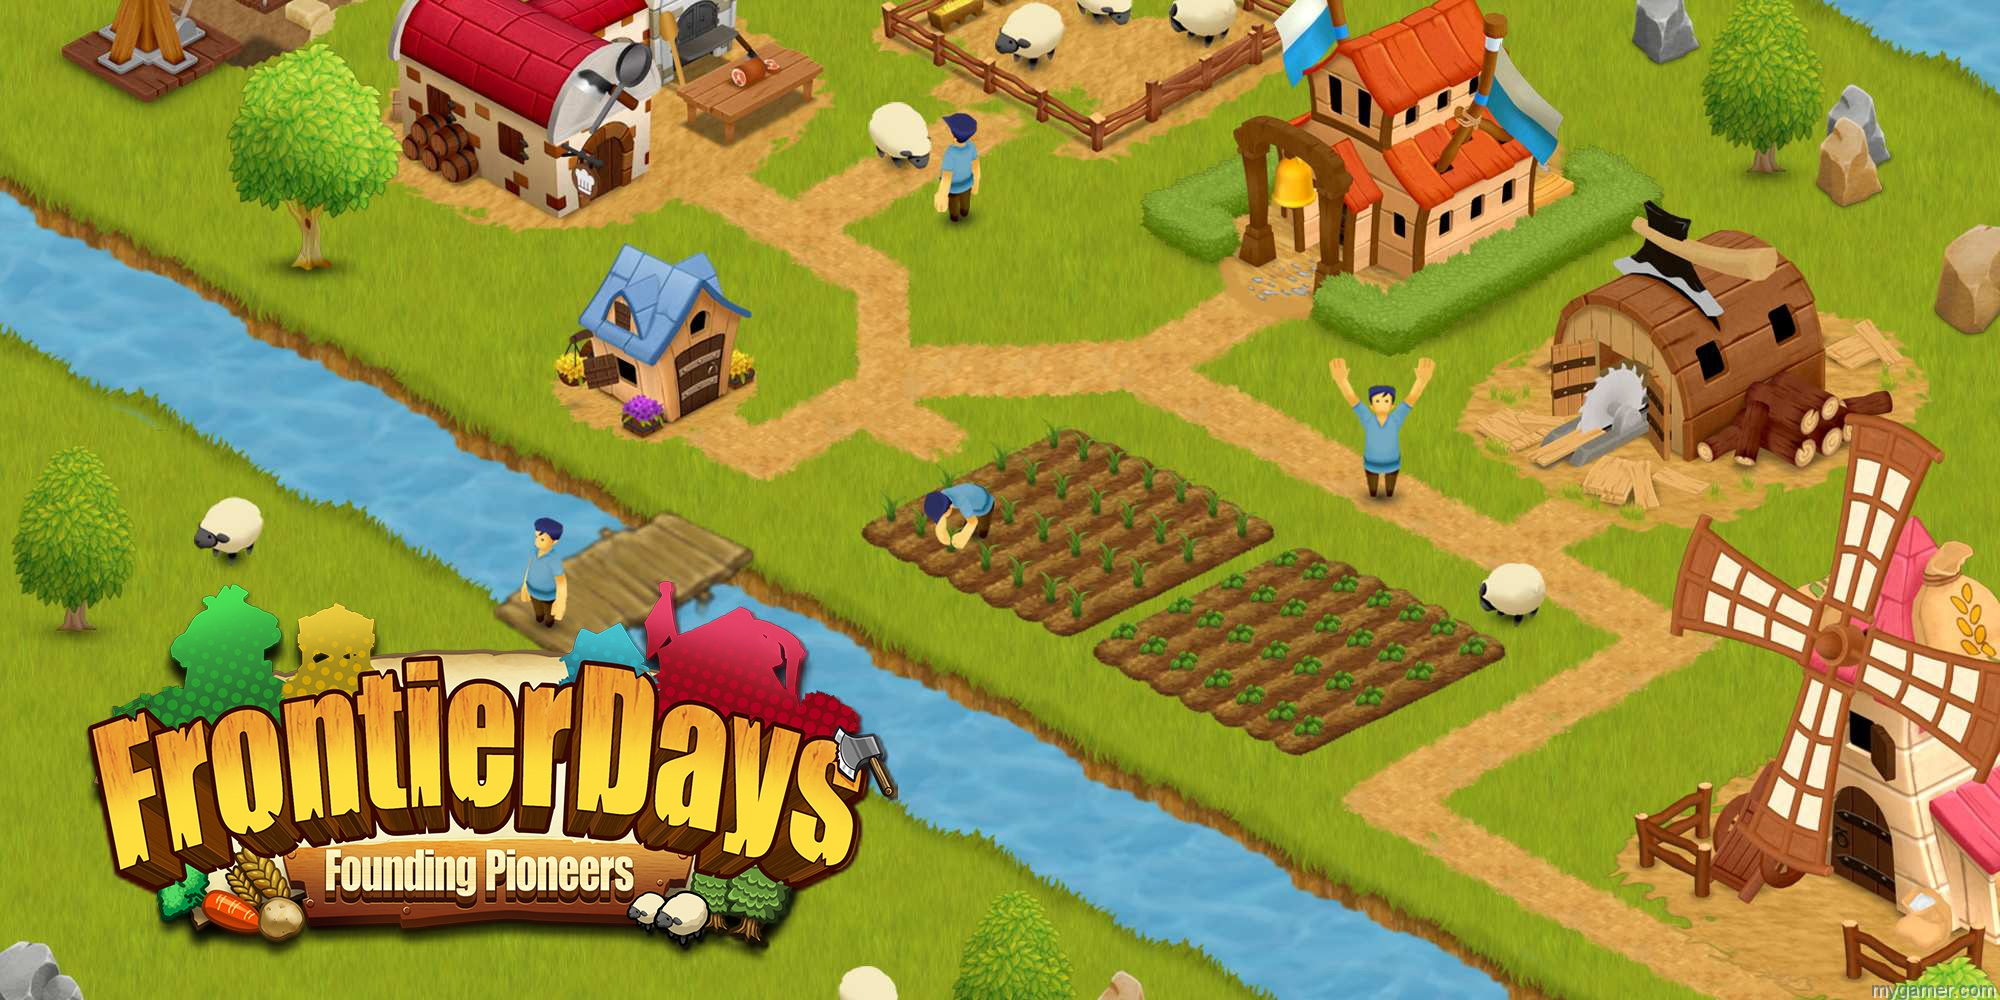 New Frontier Days – Founding Pioneers 3DS eShop Review New Frontier Days – Founding Pioneers 3DS eShop Review Frontier Days farm